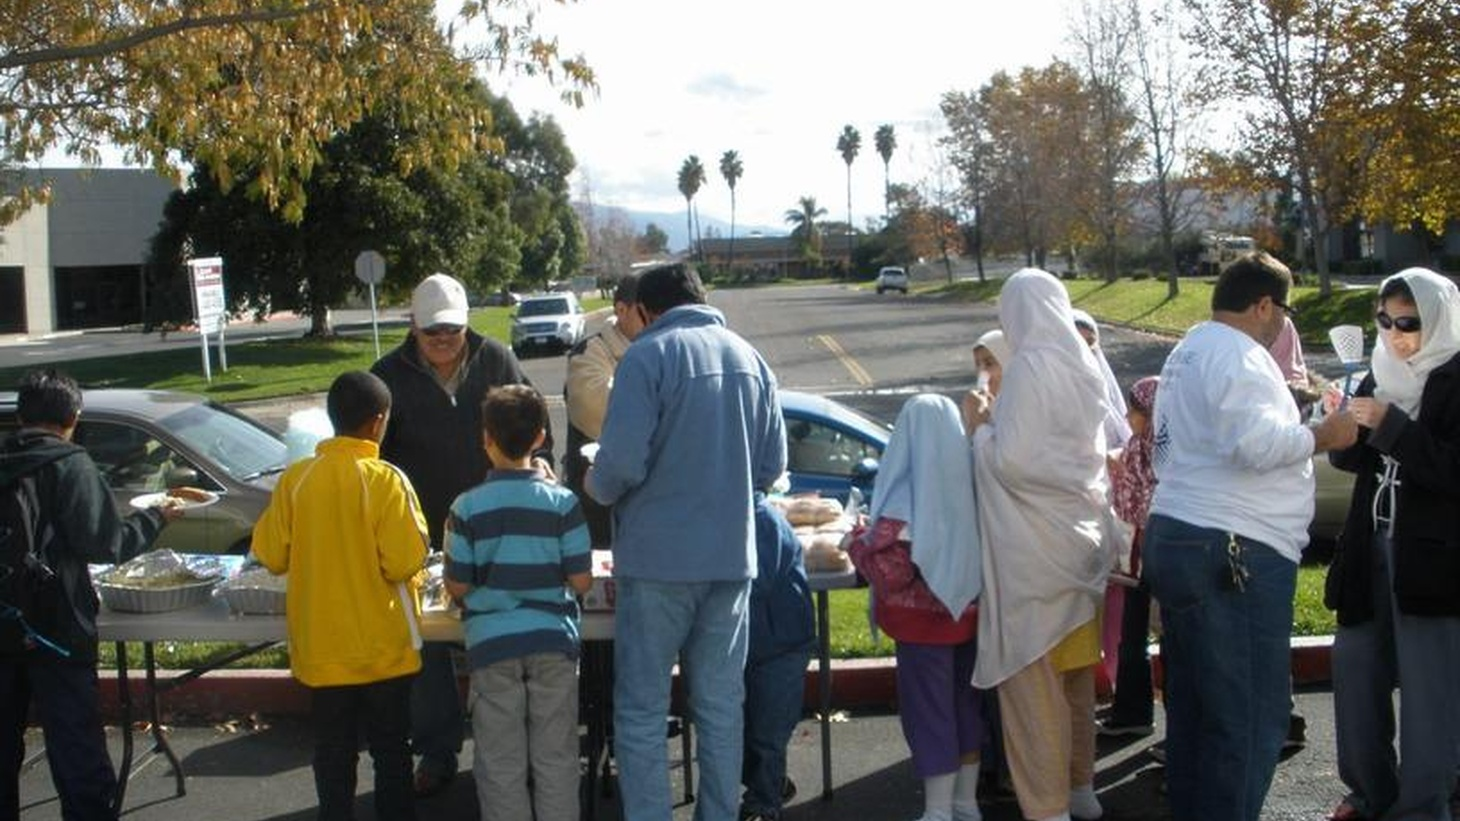 New York has its controversy over a new mosque. So does Temecula in rural Riverside County. We hear about property rights, city planning and religious diversity. Also, the City Manager of Bell in Southern Los Angeles County is still on the job, earning almost $800,000 a year to run a city of 37,000 people. On our rebroadcast of To the Point, is President Obama winning the battles but losing the war?